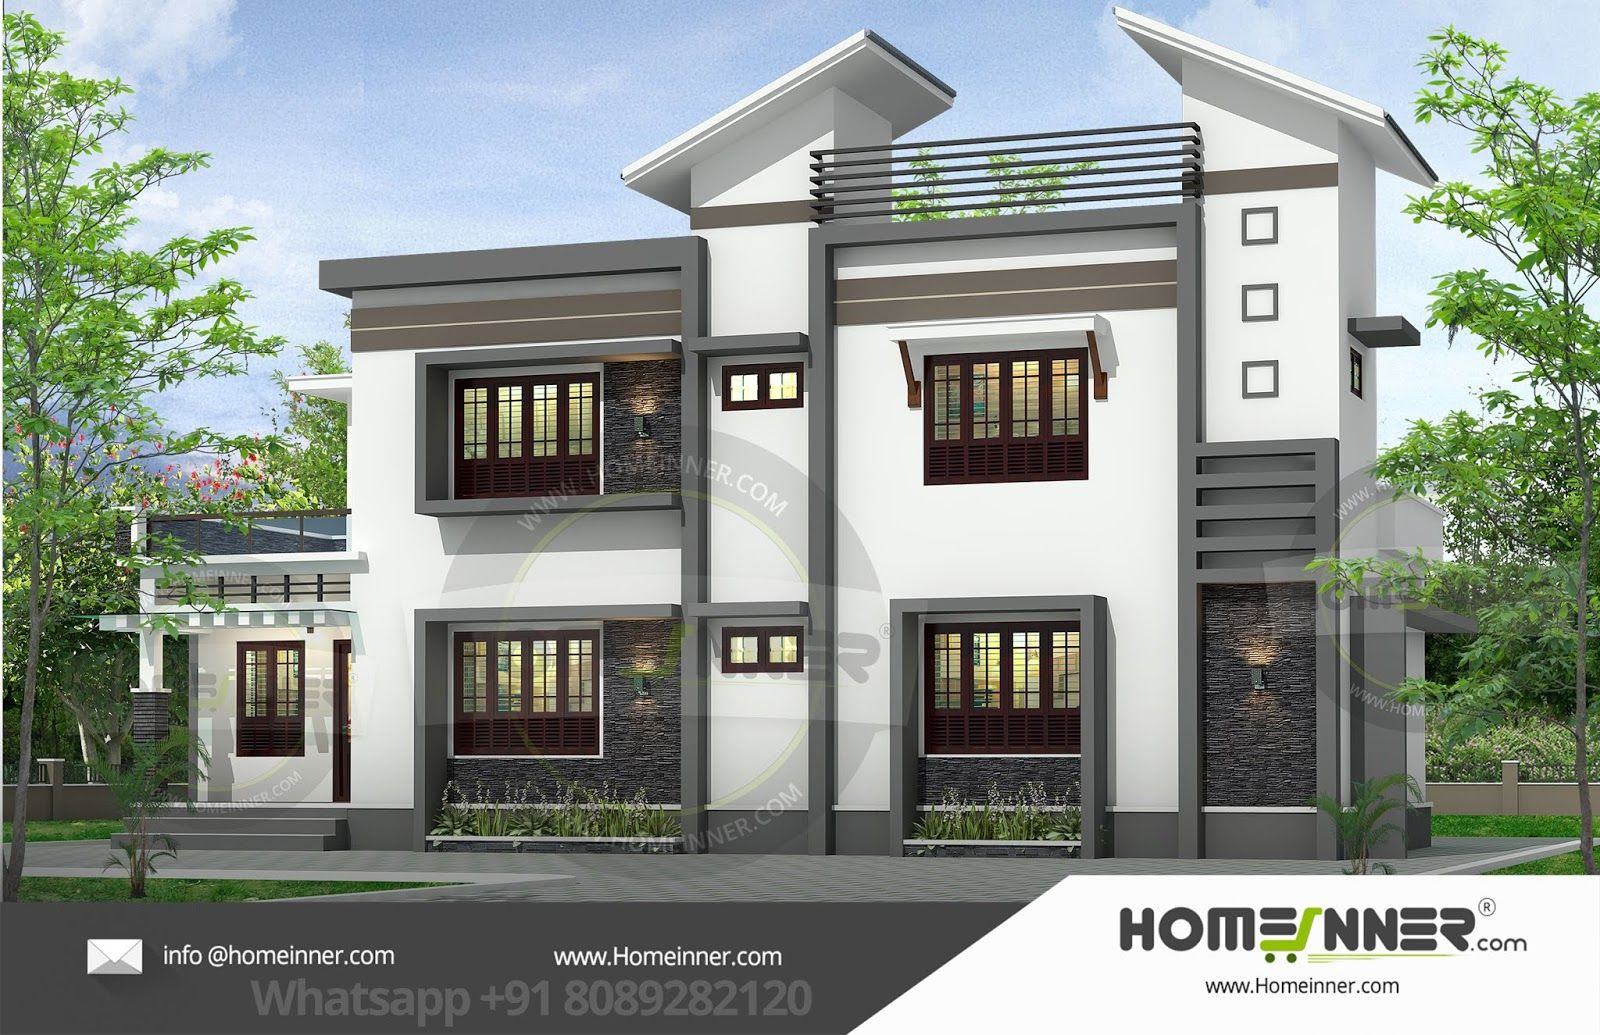 27 Lakh 4 Bhk 1916 Sq Ft Ghaziabad Villa Free House Plans House Exterior Beautiful Home Designs